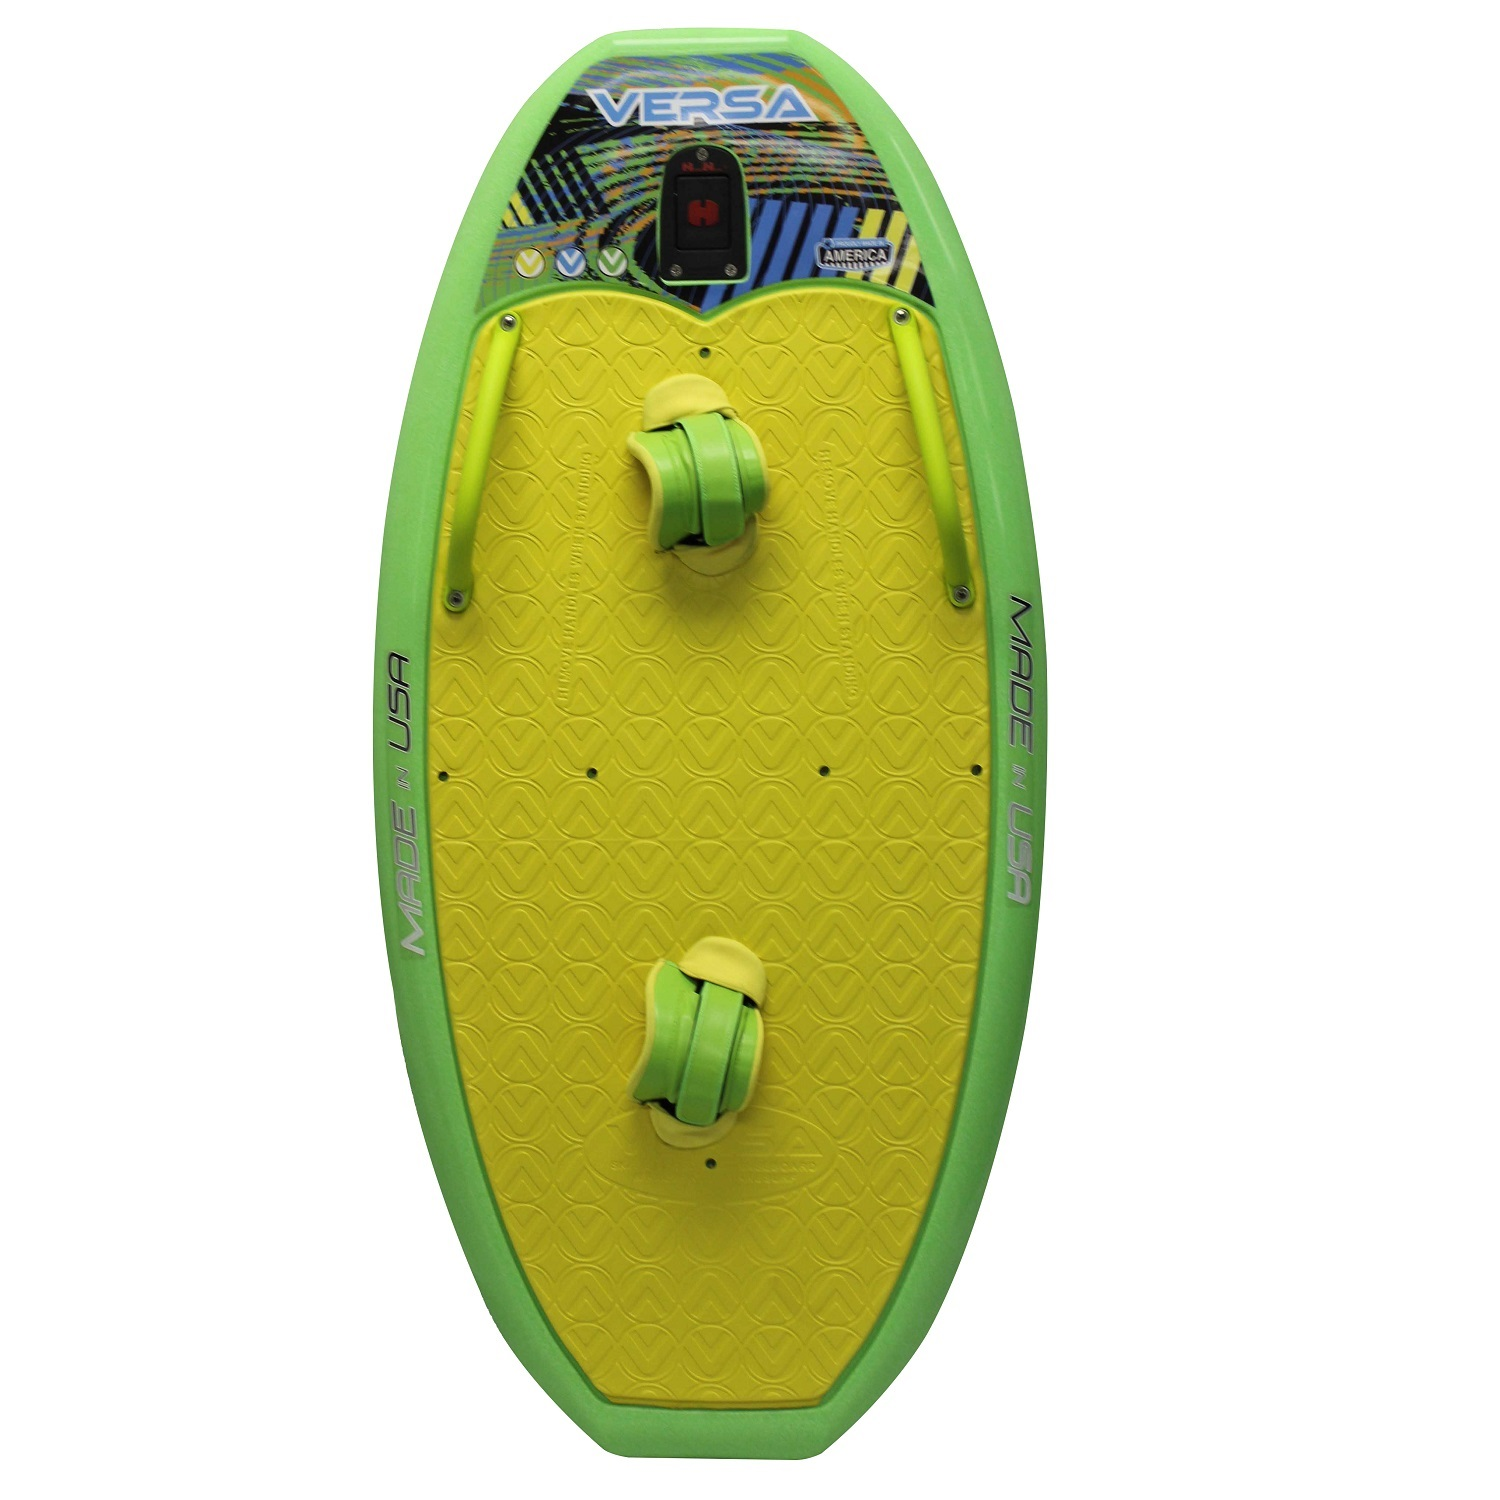 Hydroslide Versa Board by Nash Sports